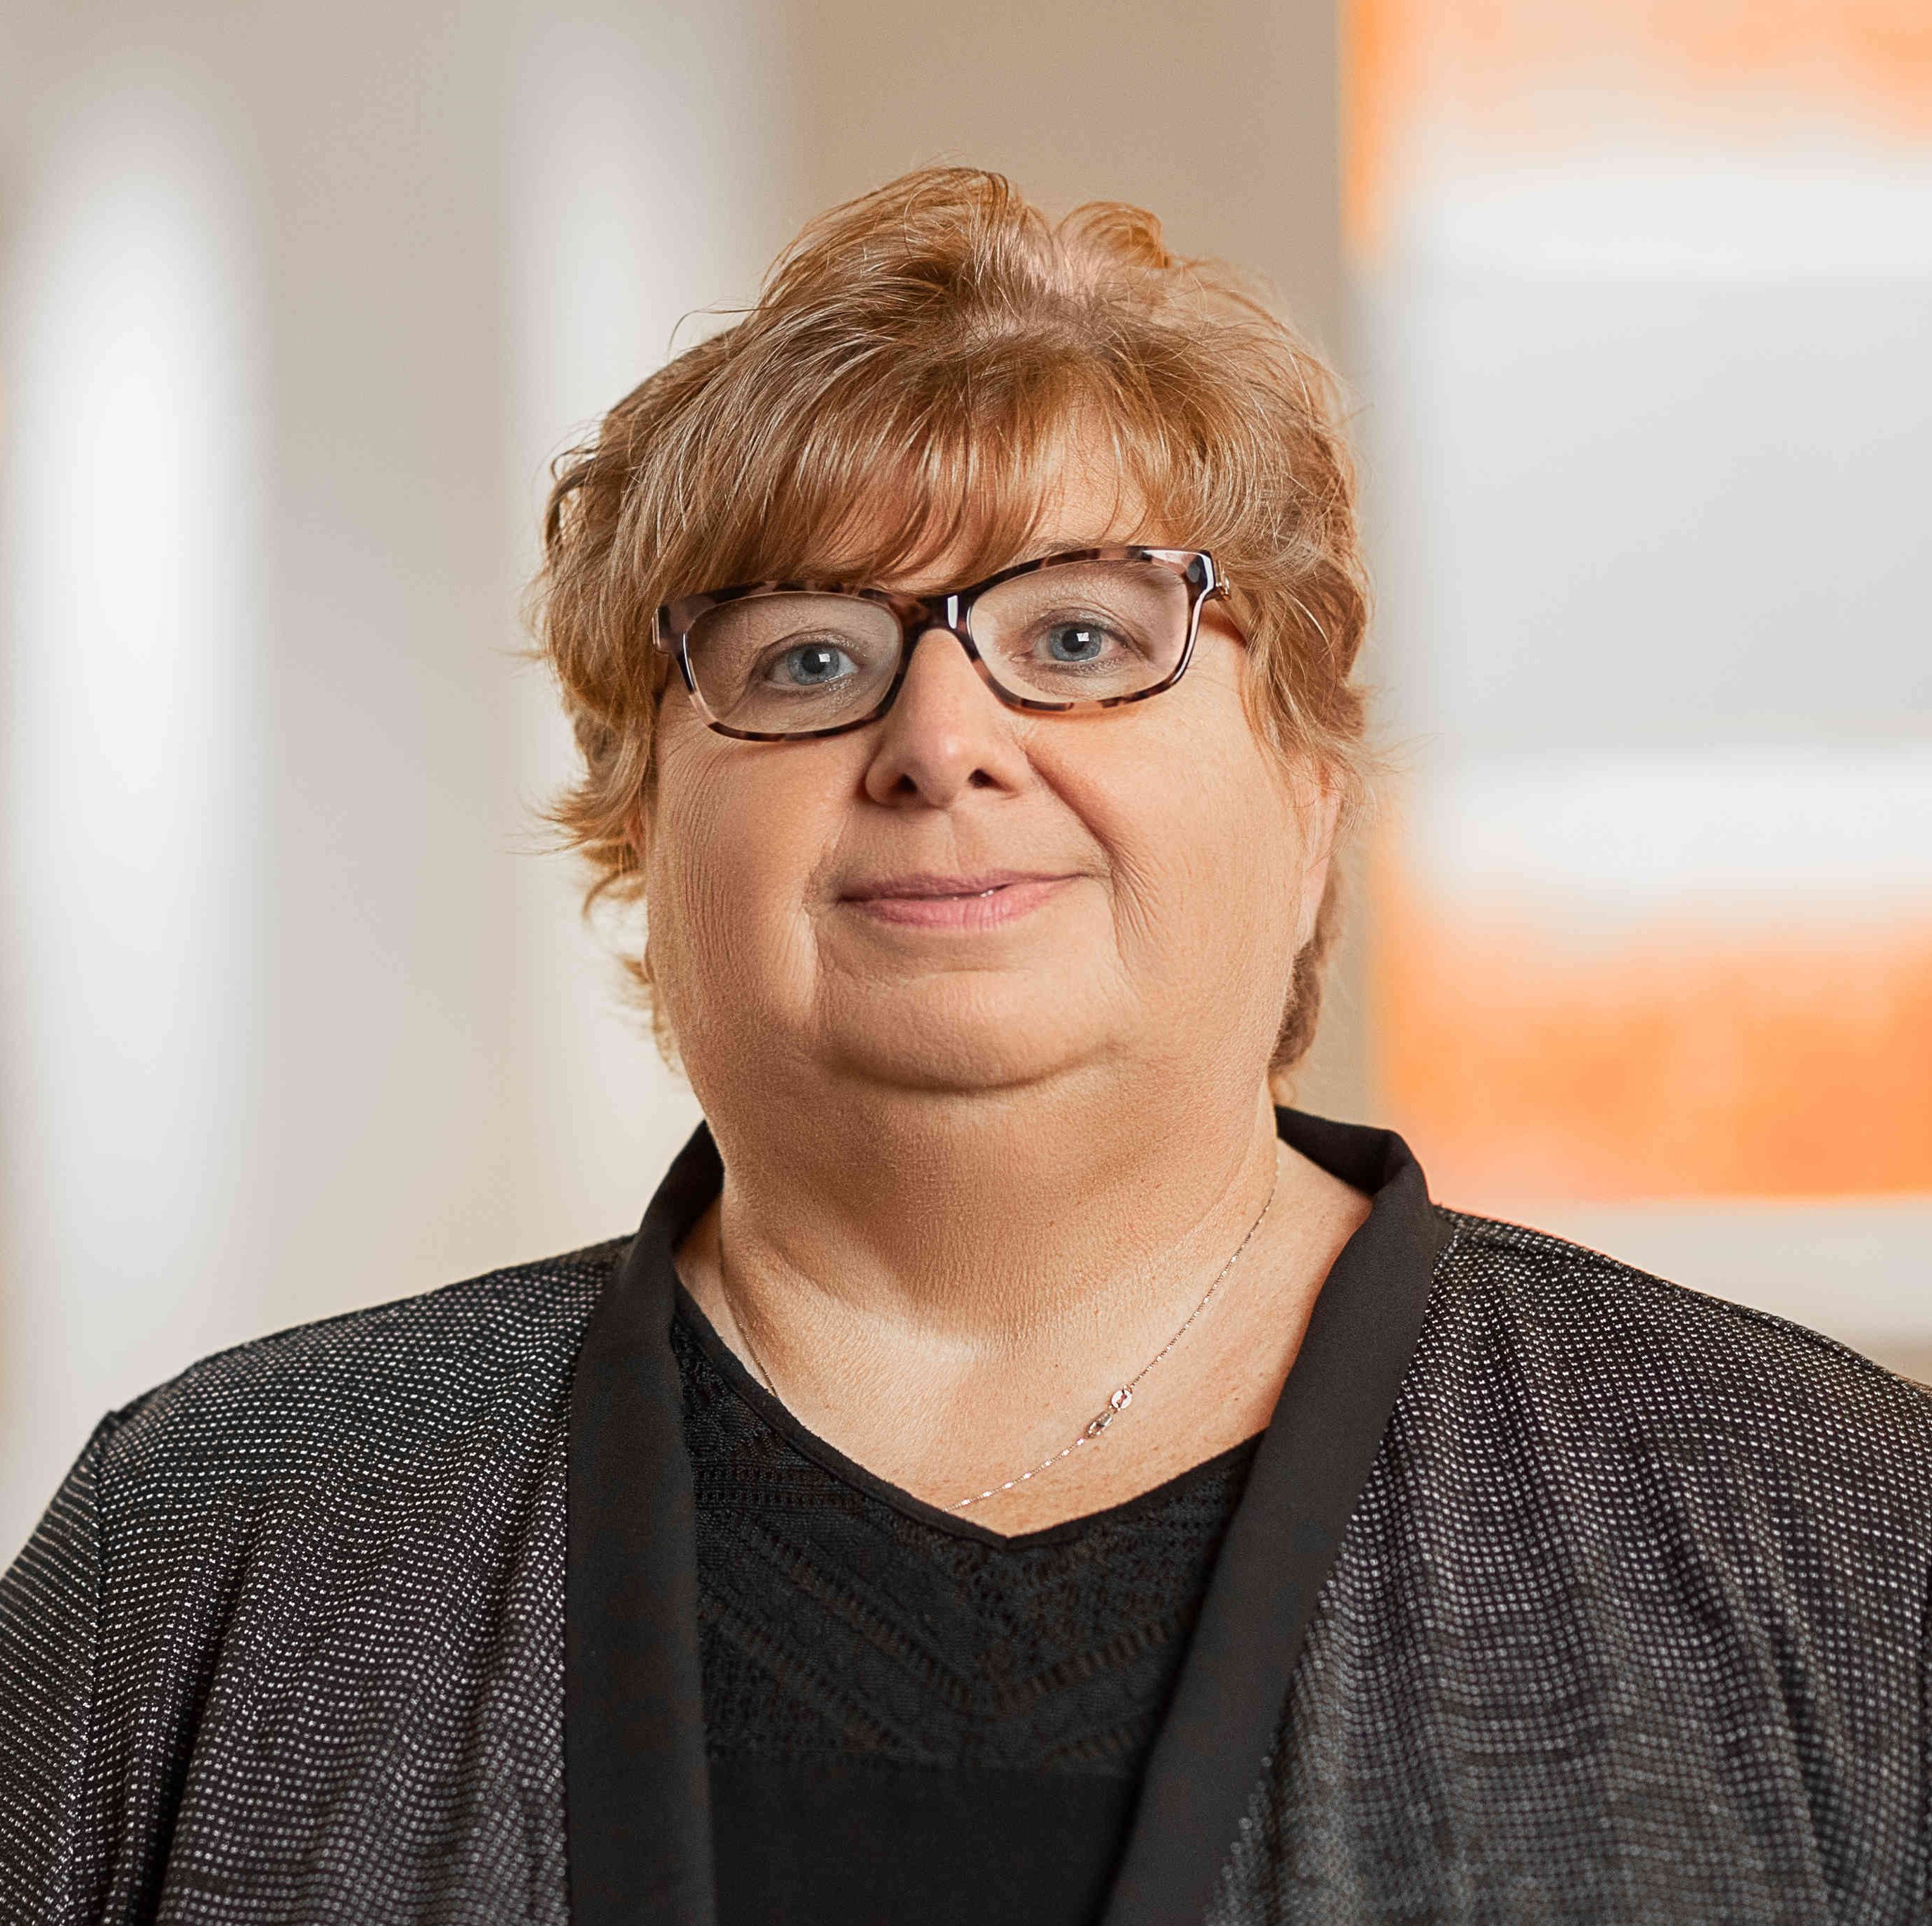 Becky Wall Schultz is the senior vice president of preconstruction for the PARIC construction company in St. Louis, MO